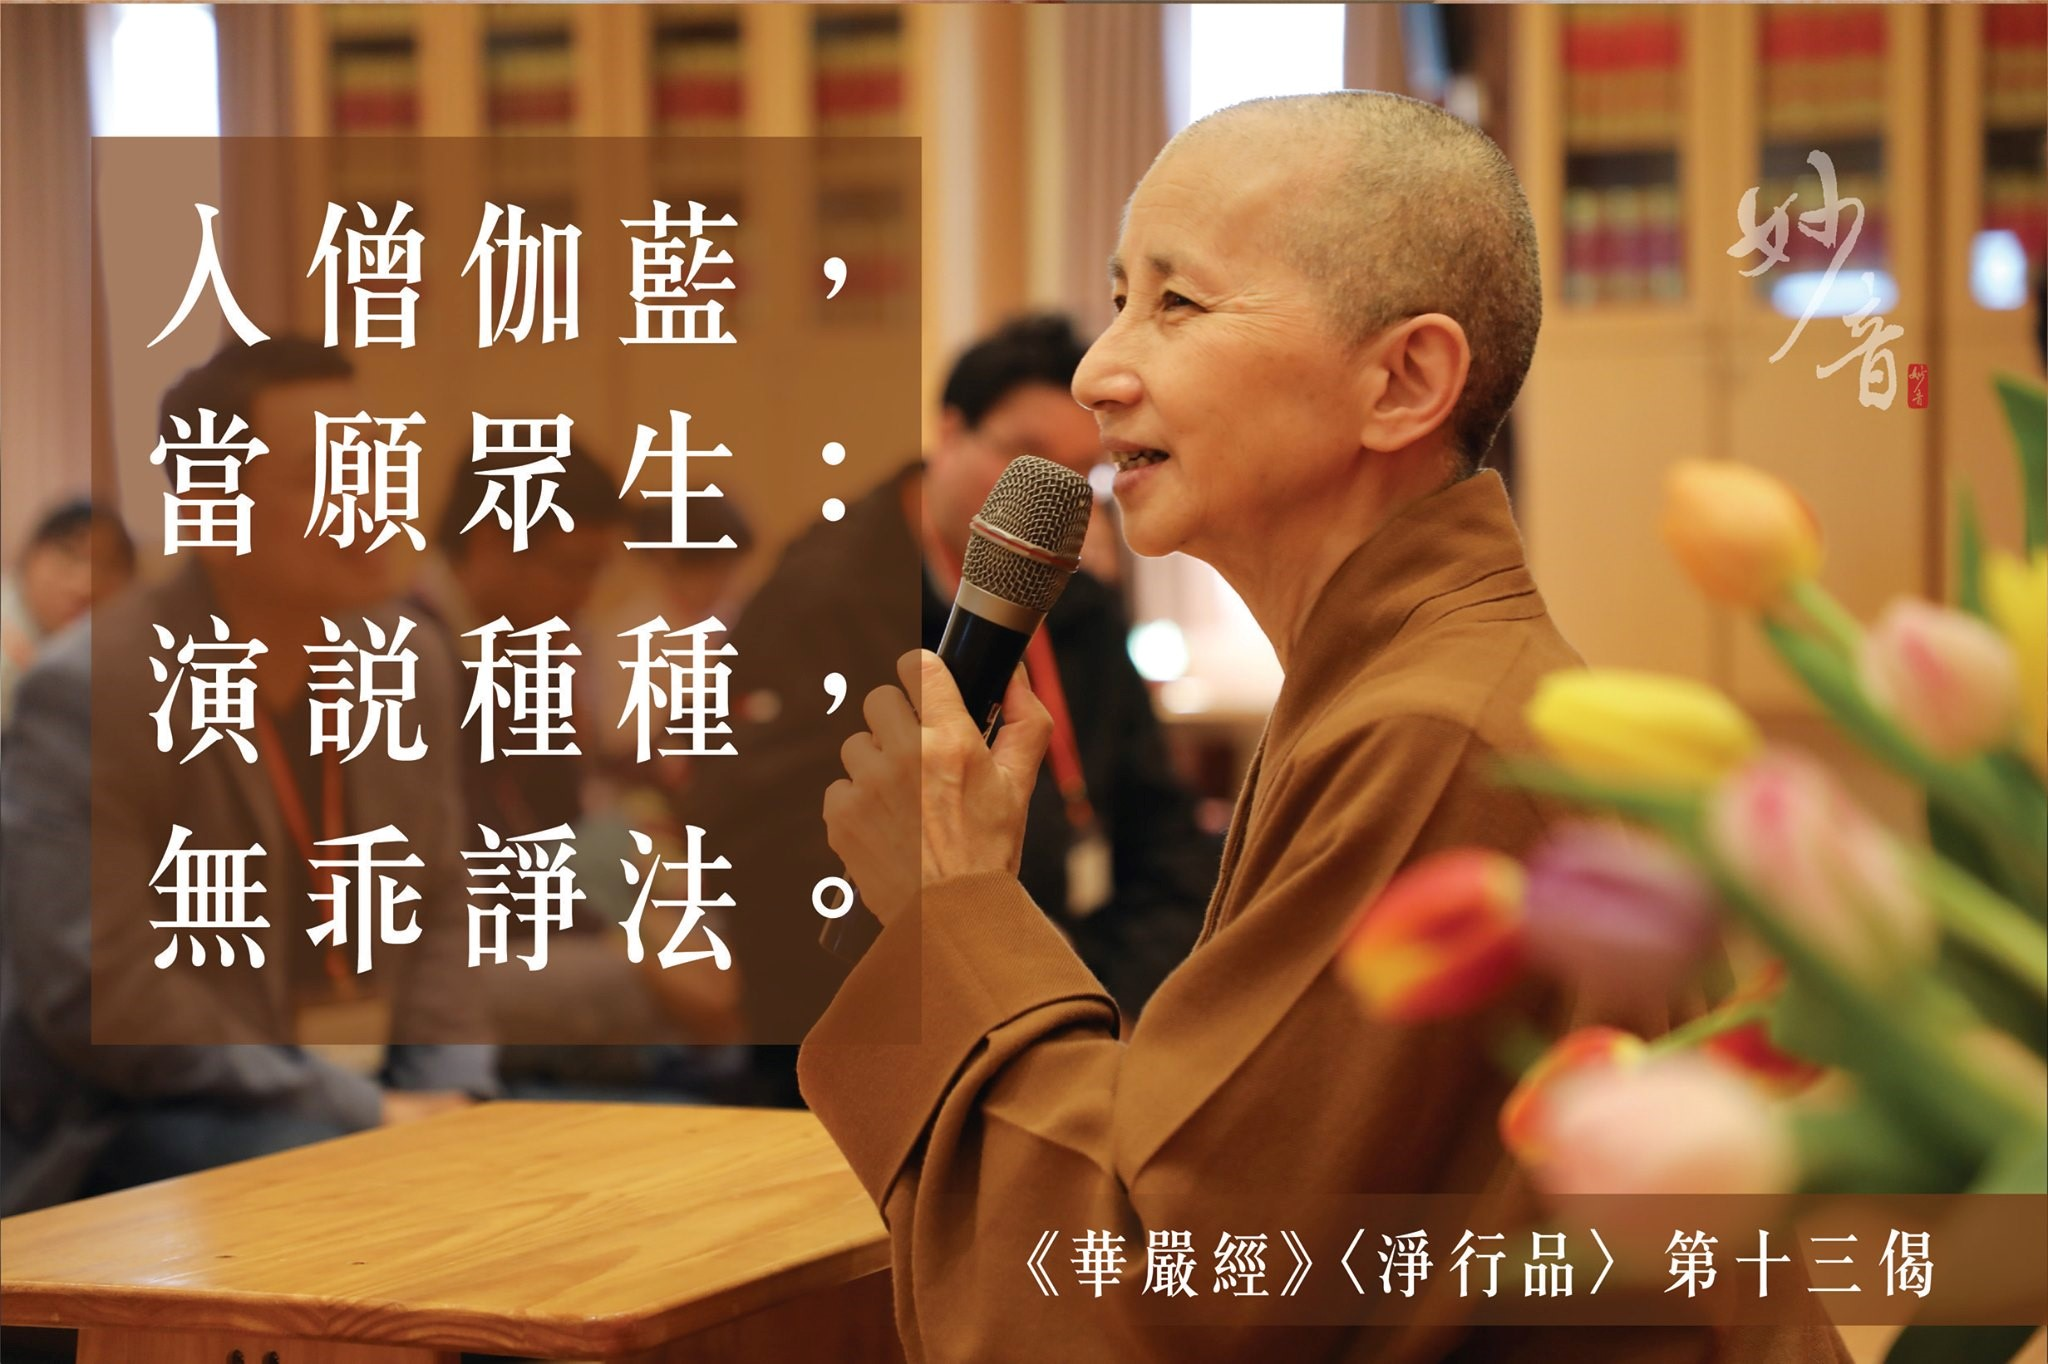 PURIFYING OUR BODY, SPEECH AND MIND II #013 @BWMONASTERY 26.02.2020